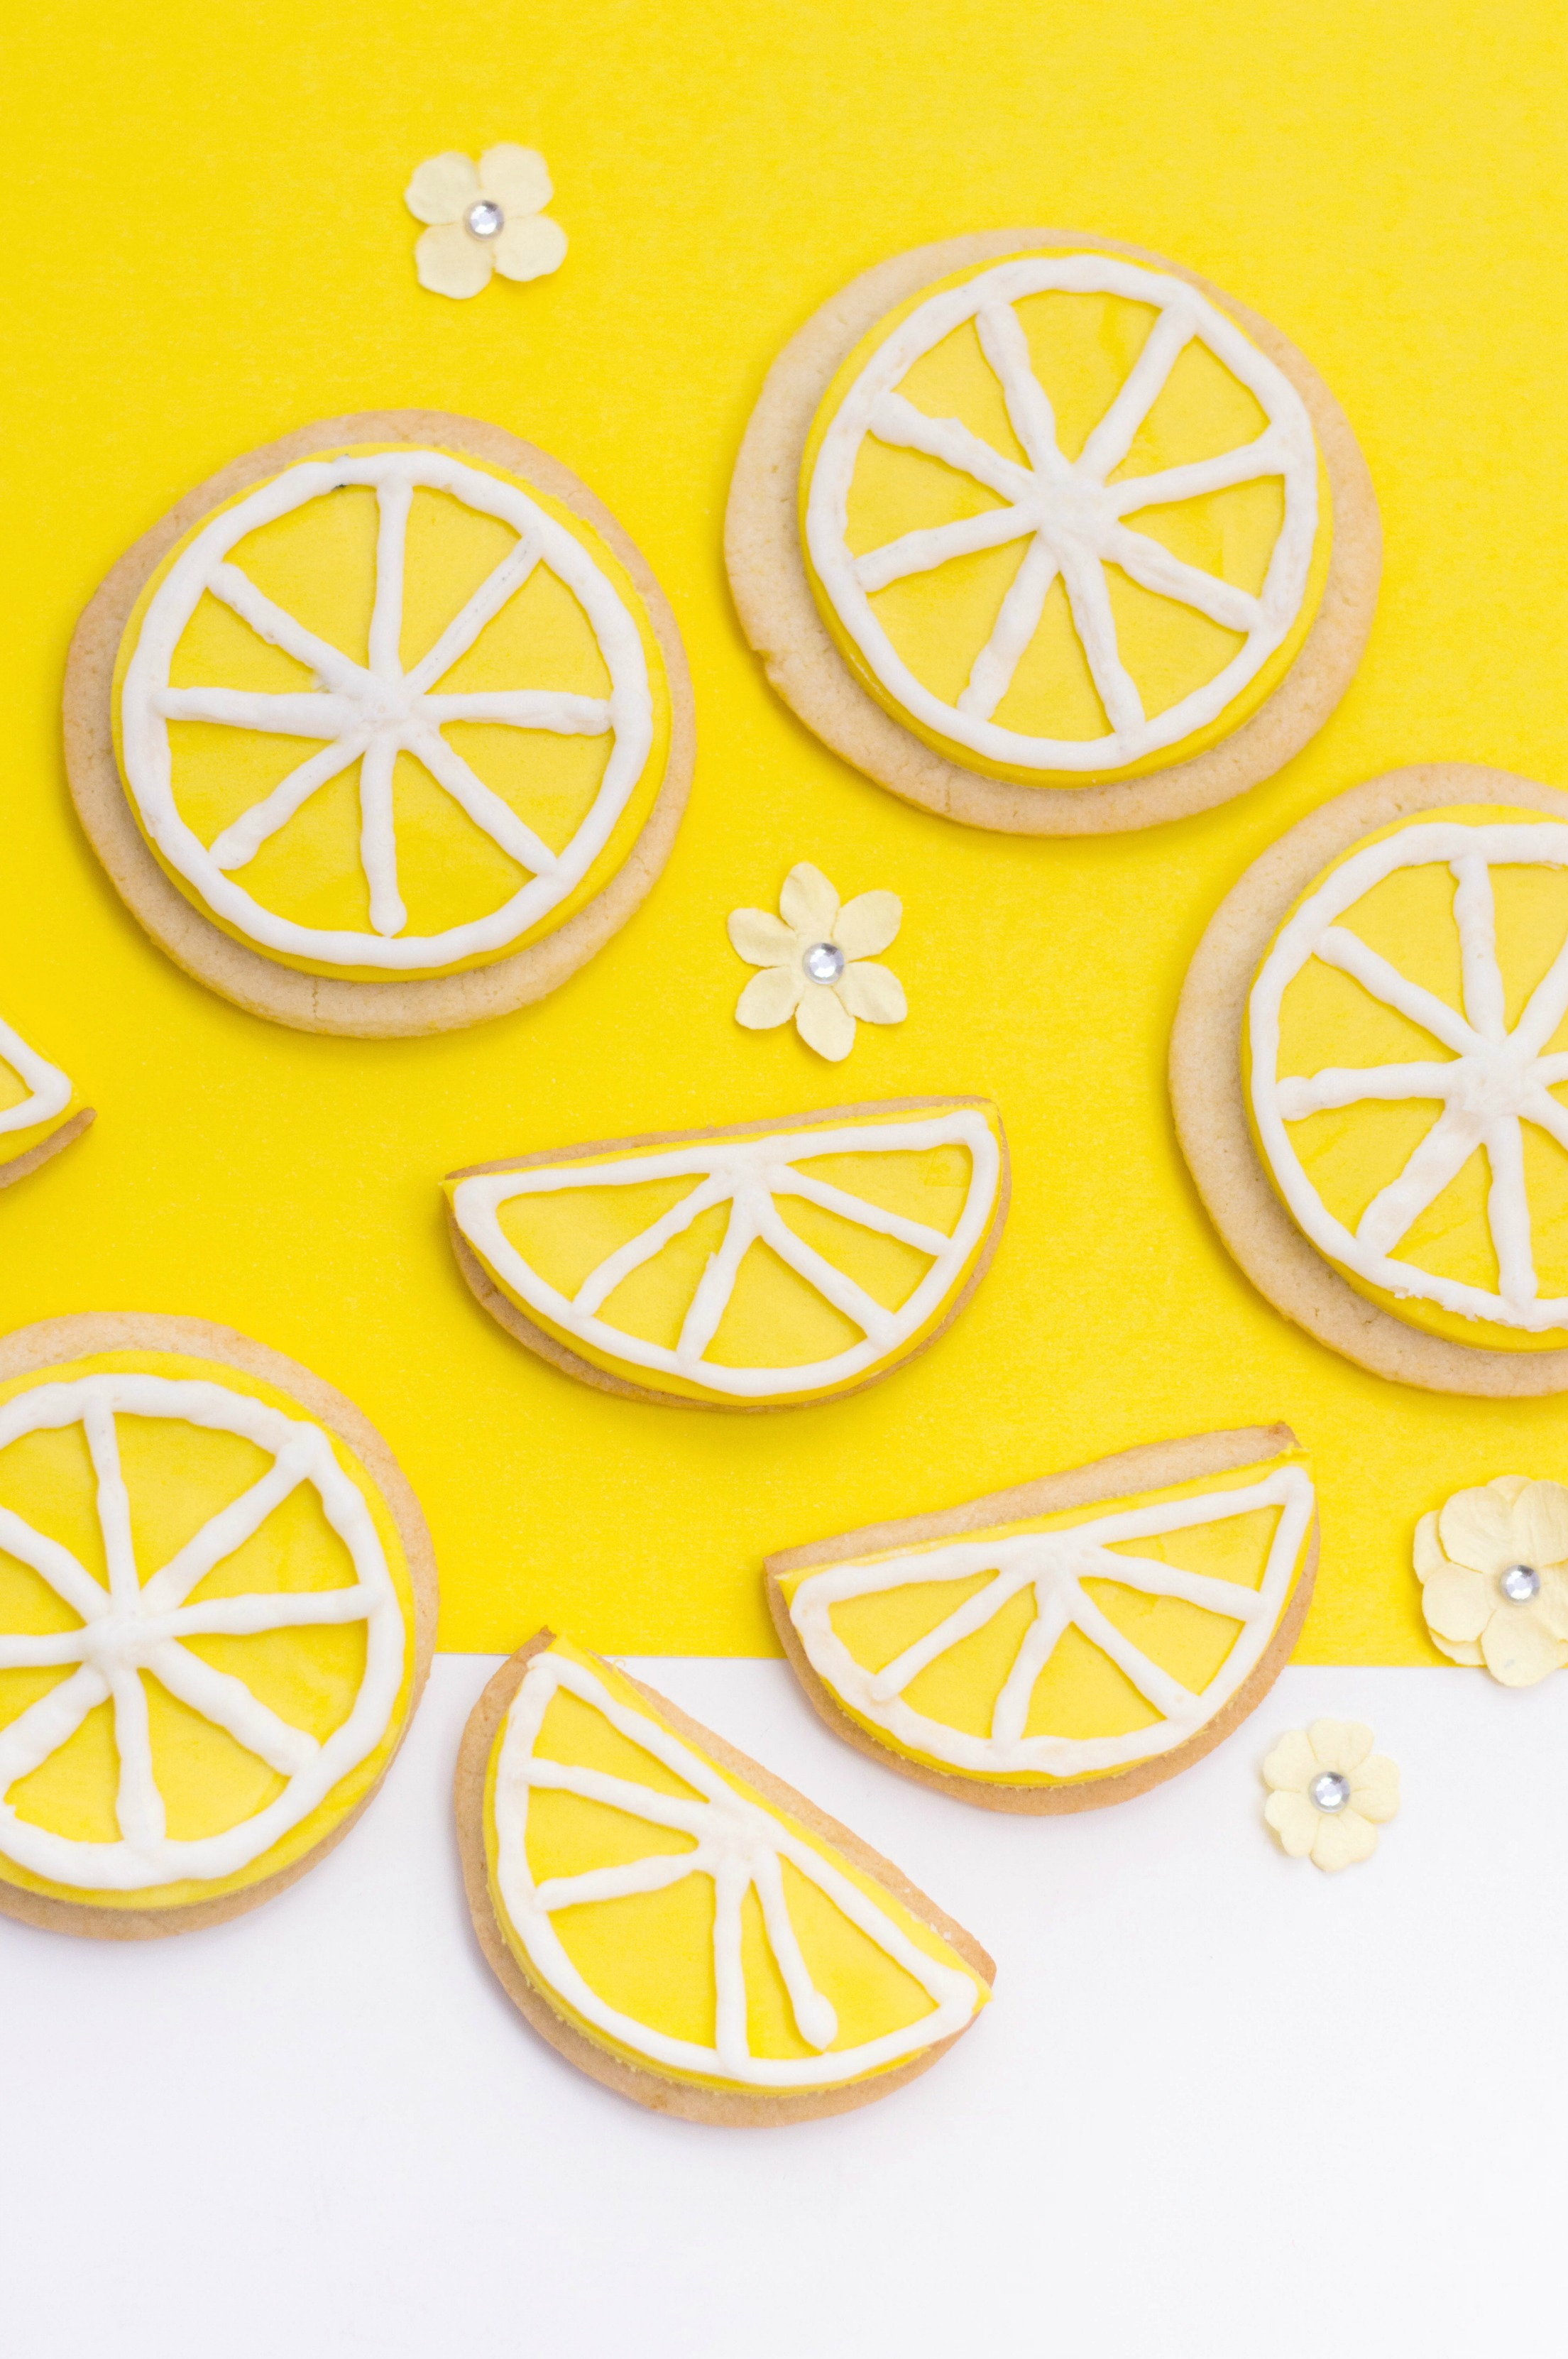 A yellow and white background with sugar cookies and small flowers are shown. 4 are made to look like lemon slices and 4 are cut in half to look like lemon wedges.